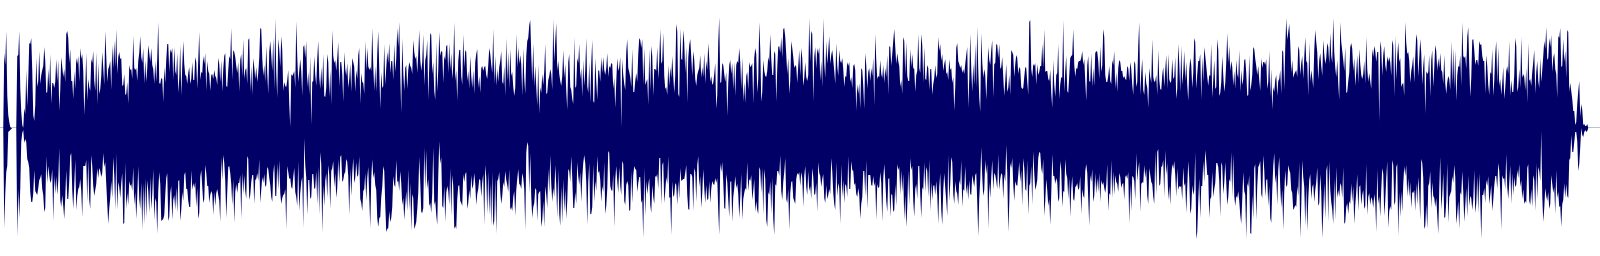 waveform of track #143599